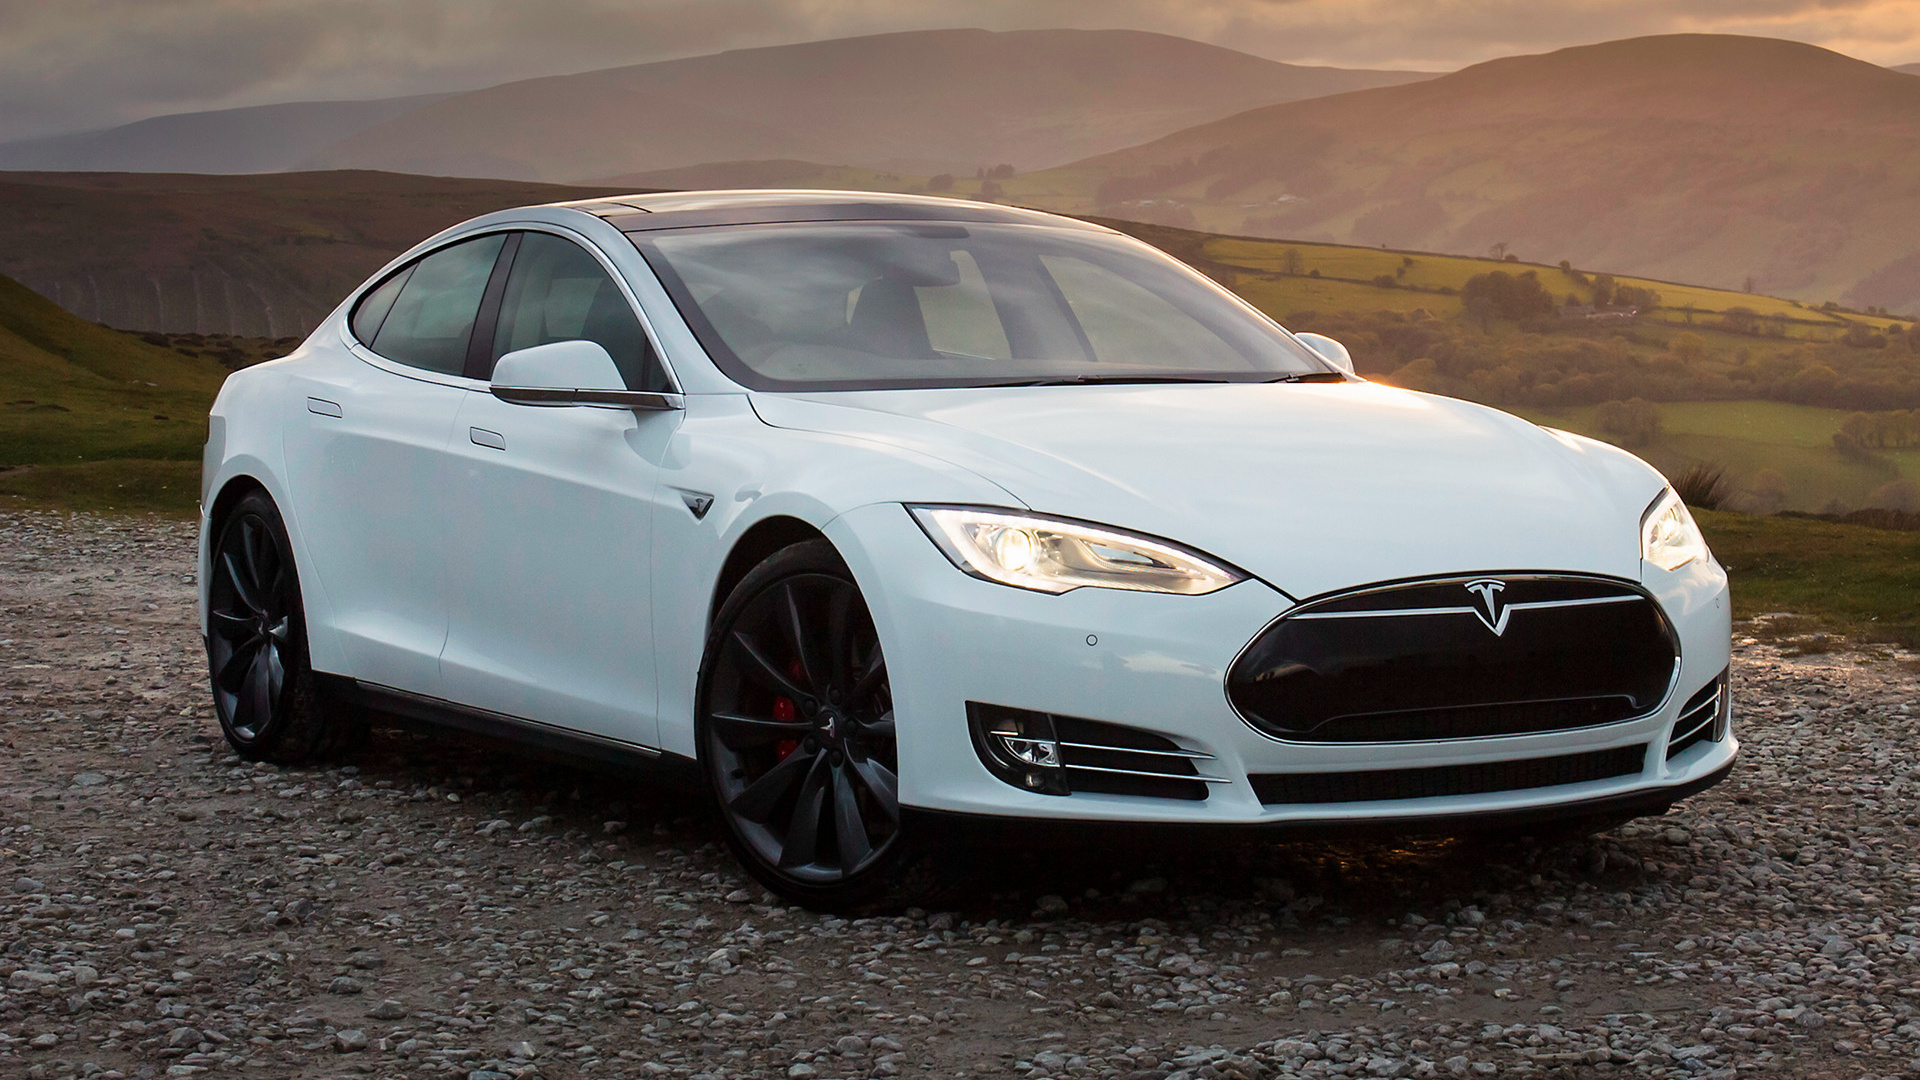 Tesla Model S P85 2014 UK Wallpapers and HD Images 1920x1080